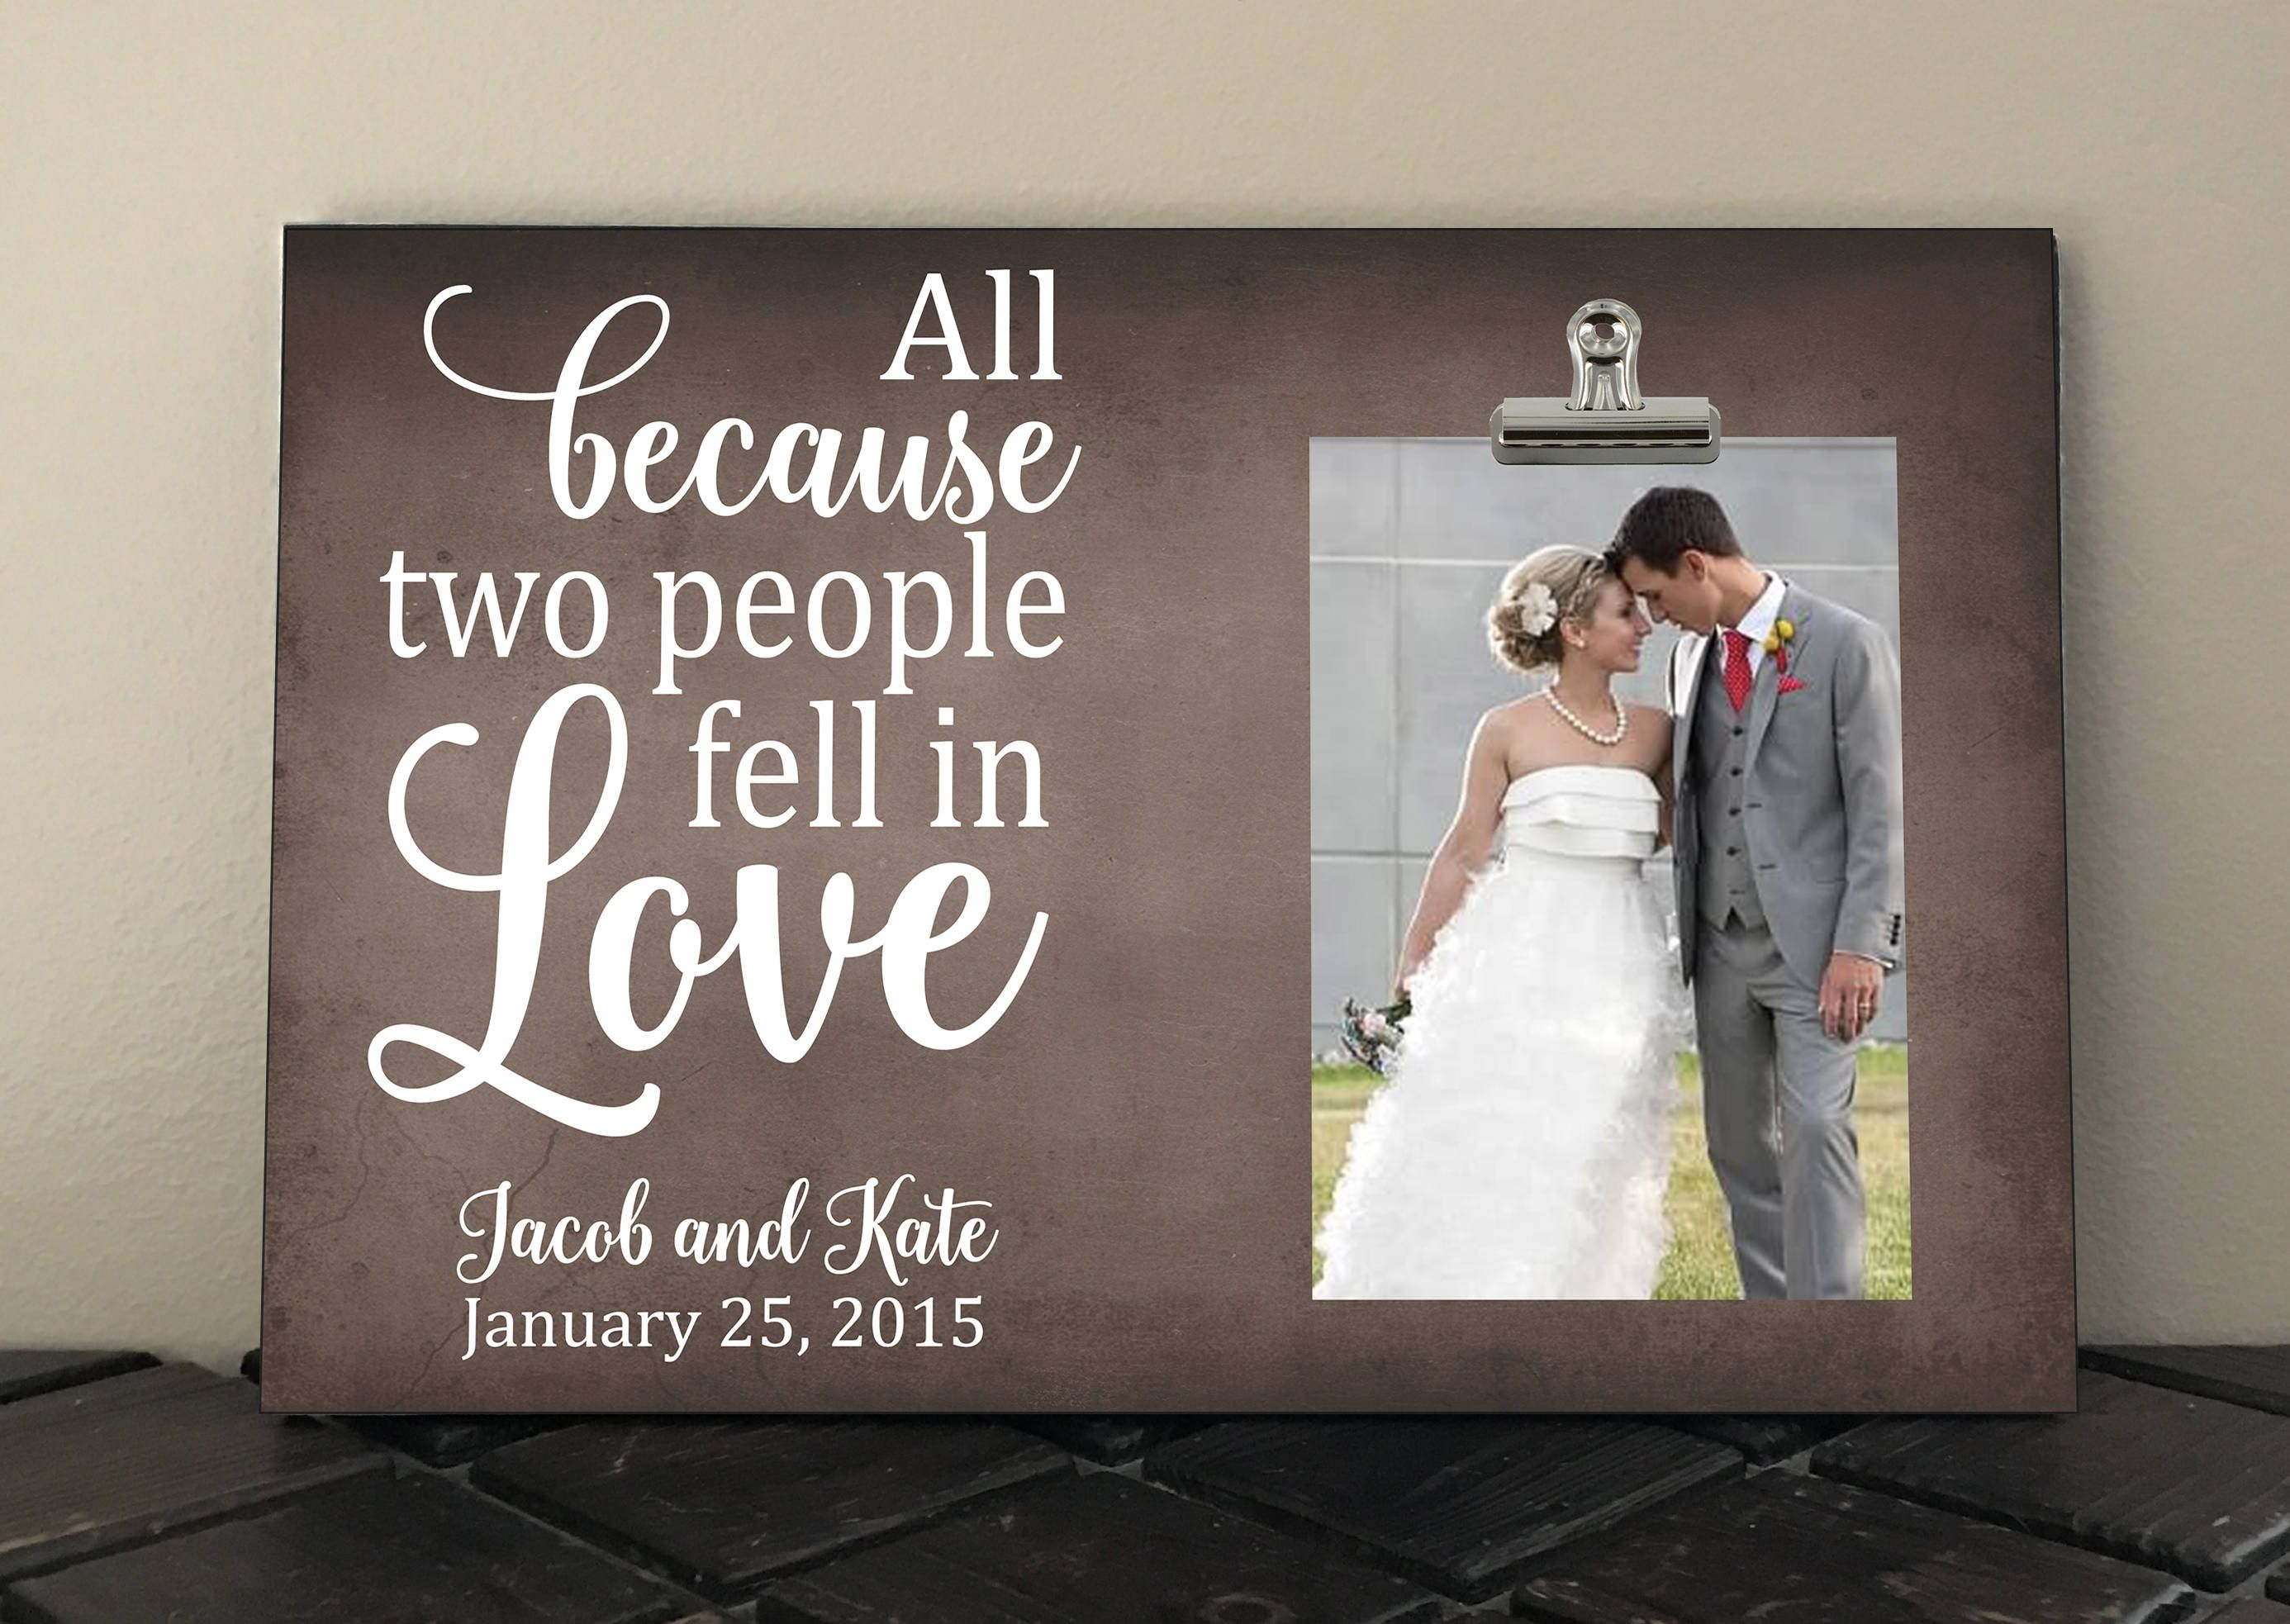 Anniversary Wedding Gift Bride And Groom All Because Two People Fell In Wedding Gifts For Bride And Groom Wedding Gifts For Parents Wedding Gifts For Bride